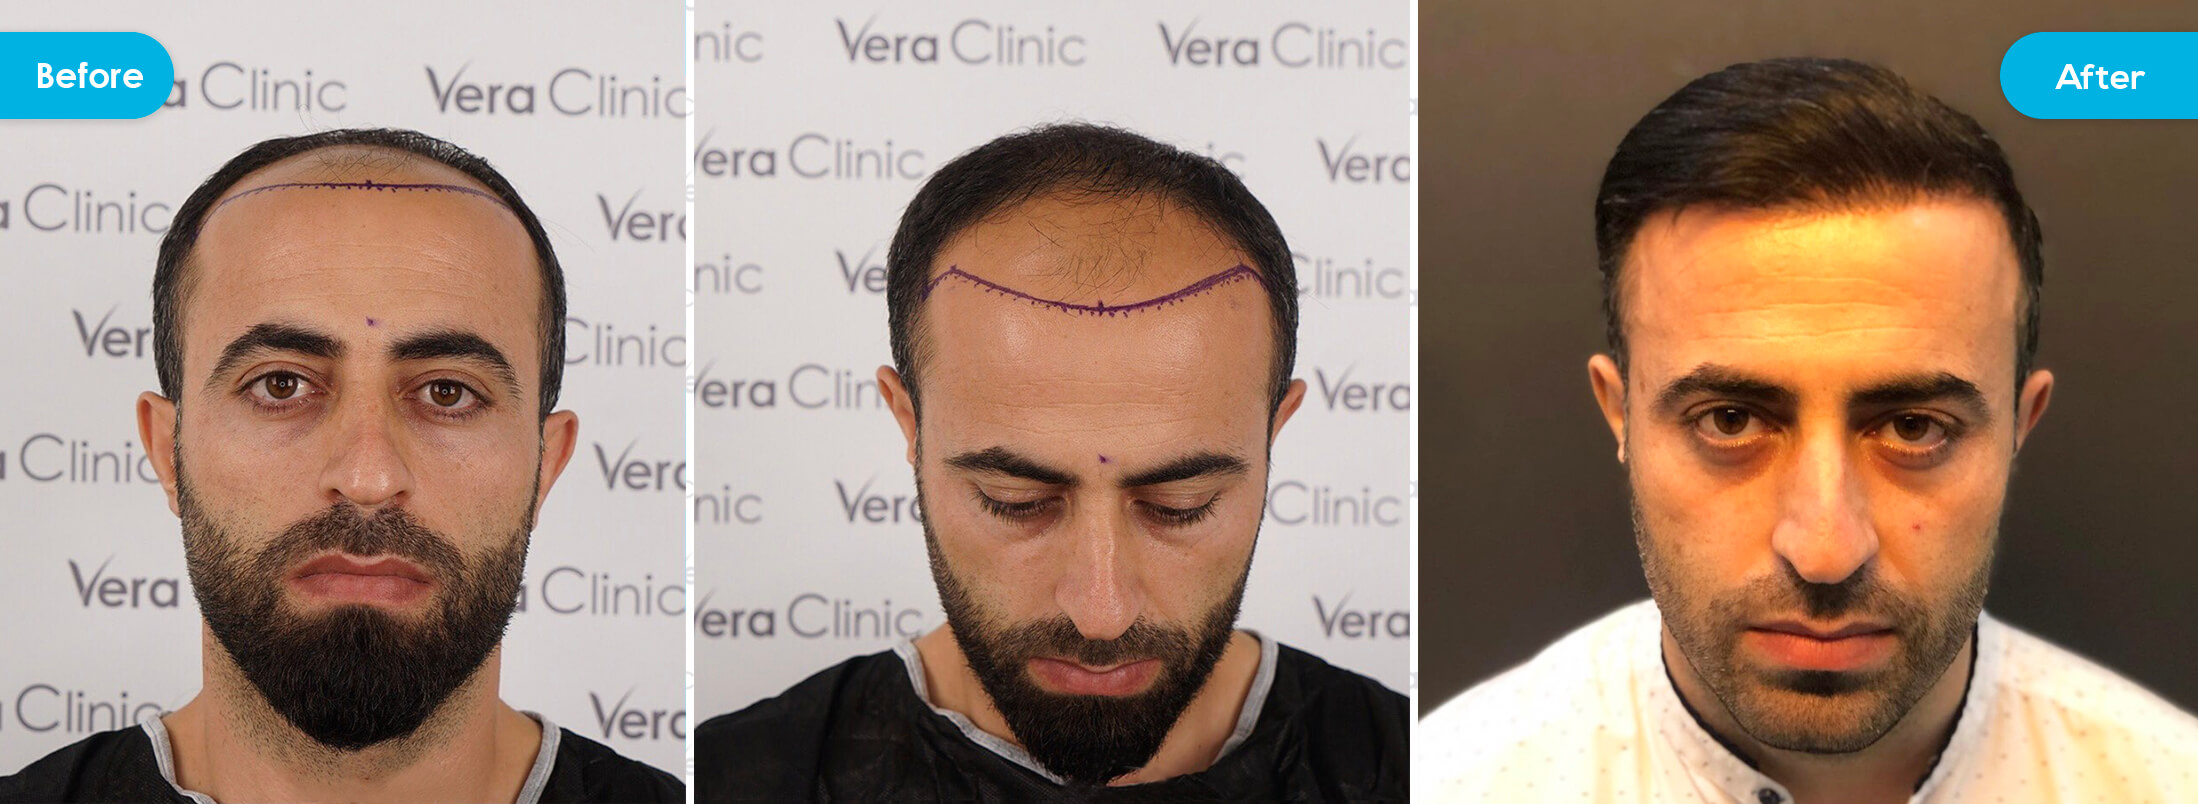 hair transplant turkey before & after